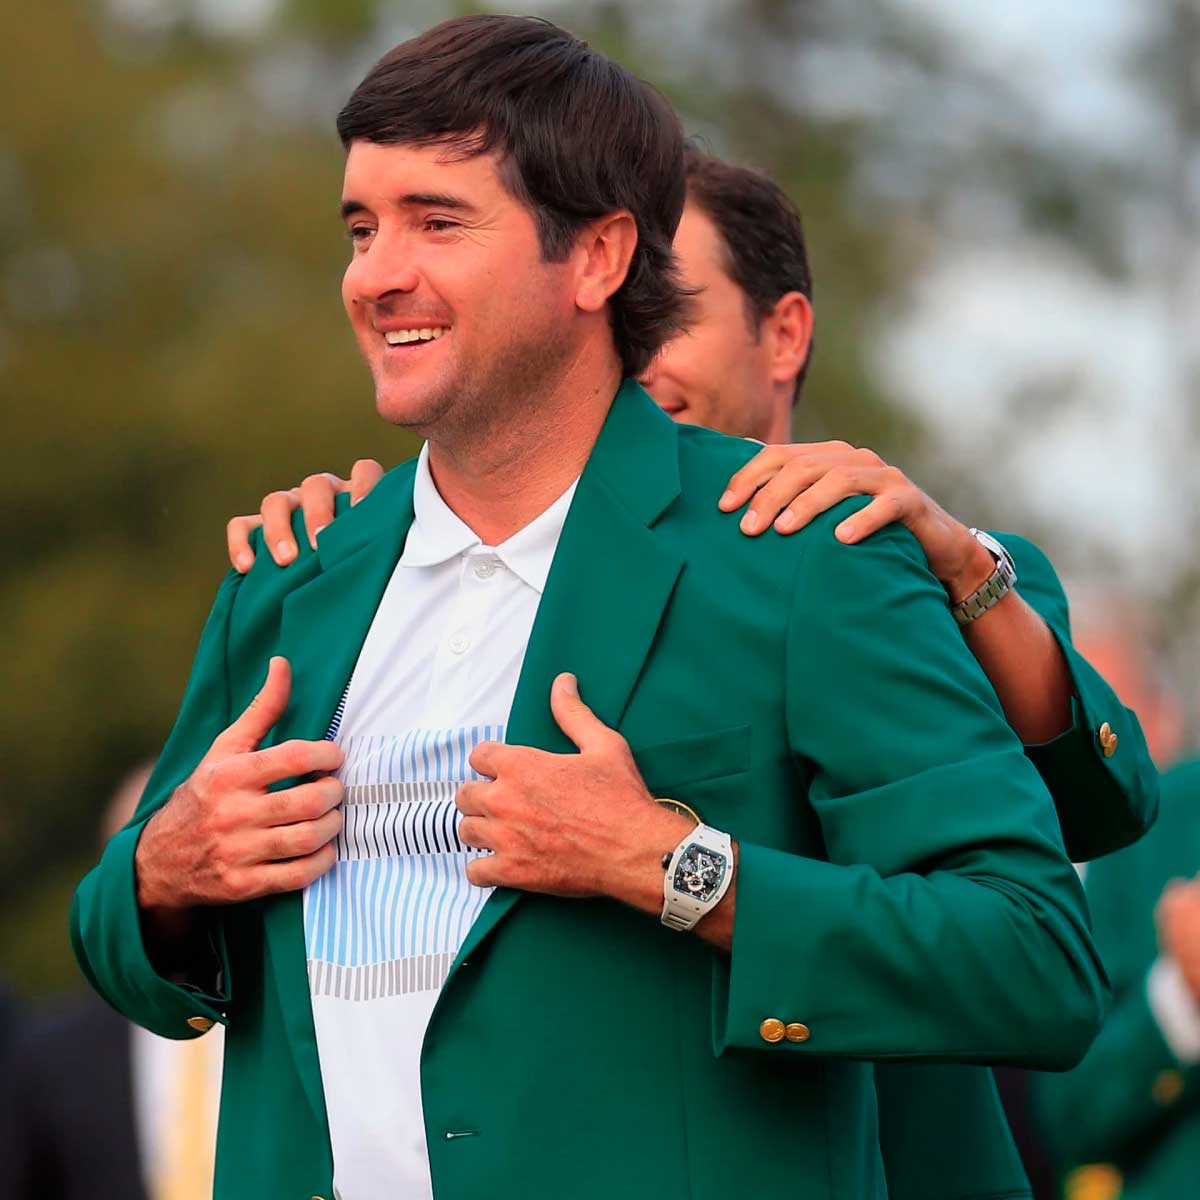 Bubba Watson cliched the green jacket first in 2012 and a second time in 2014, here on his wrist is the Richard Mille Tourbillon RM 038 Bubba Watson (Image: richardmille.com)